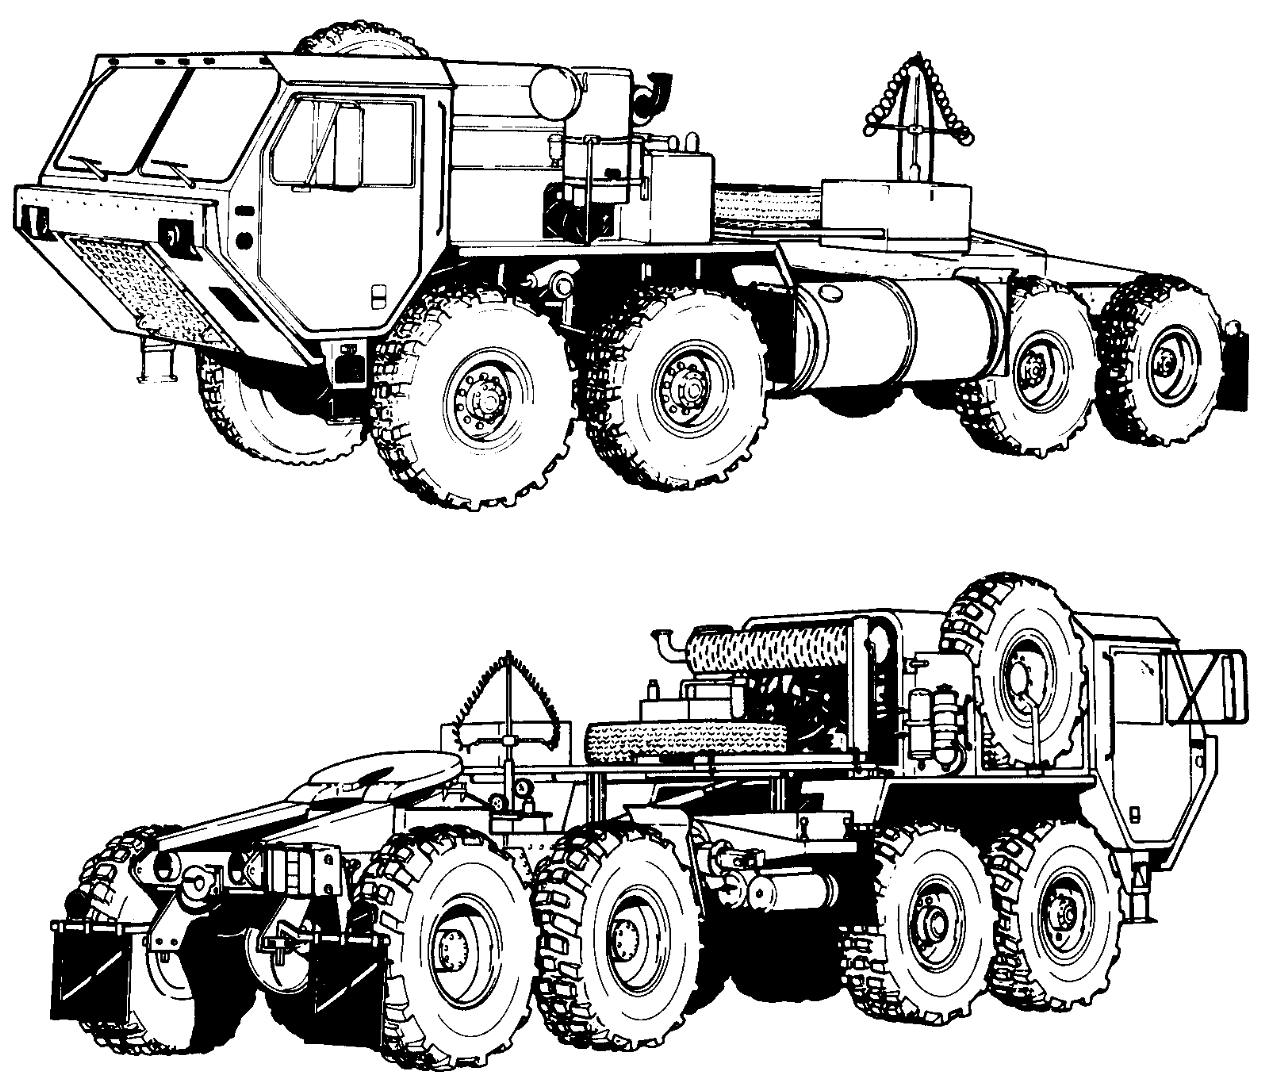 1280x1090 M977 Heavy Expanded Mobility Tactical Truck (Hemtt)